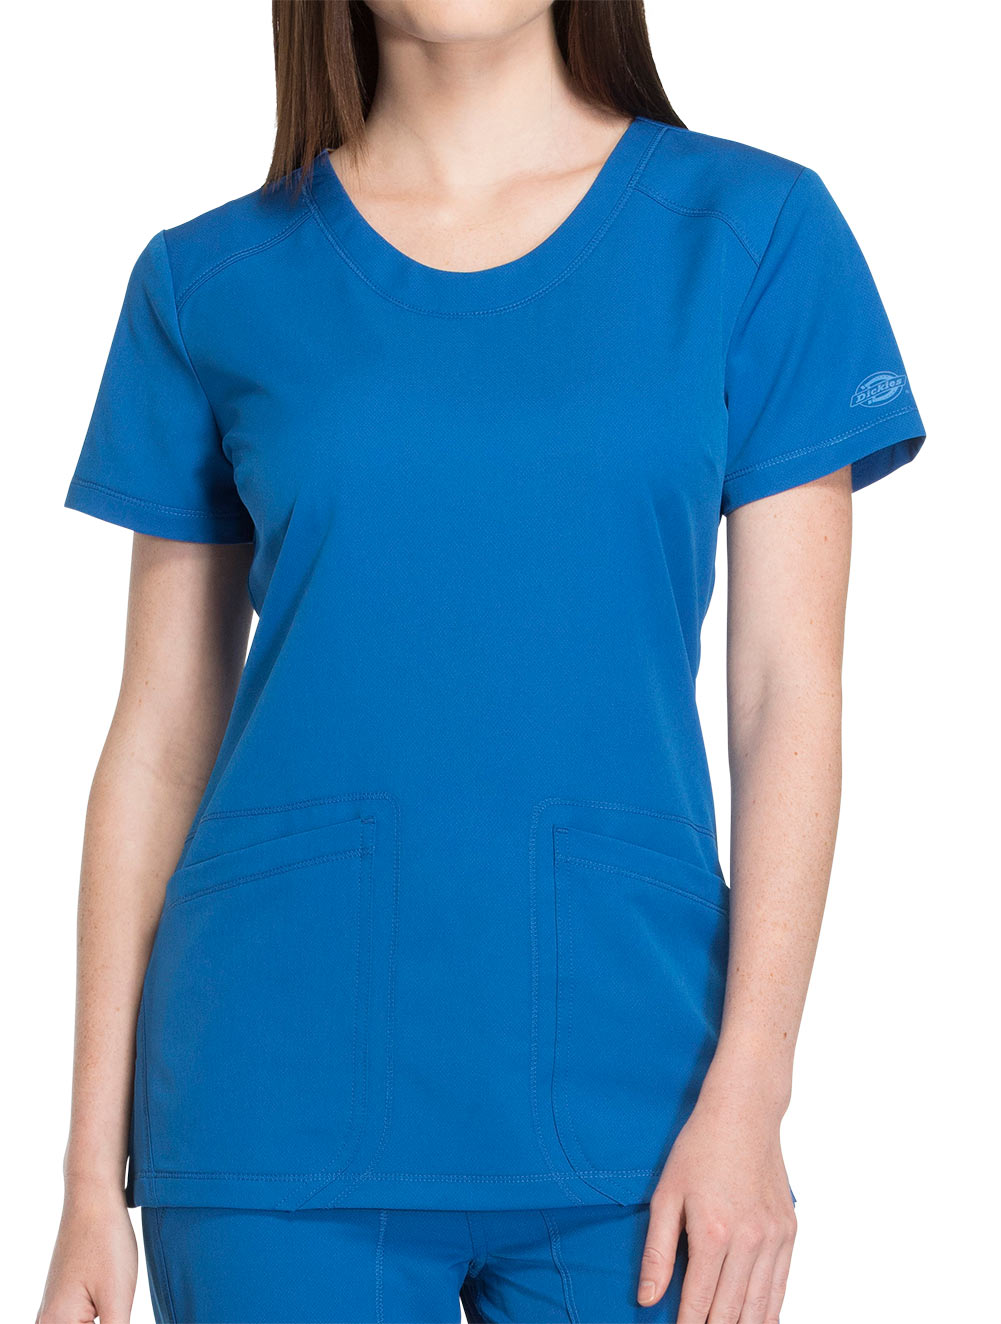 'Dynamix' Rounded V-Neck Top